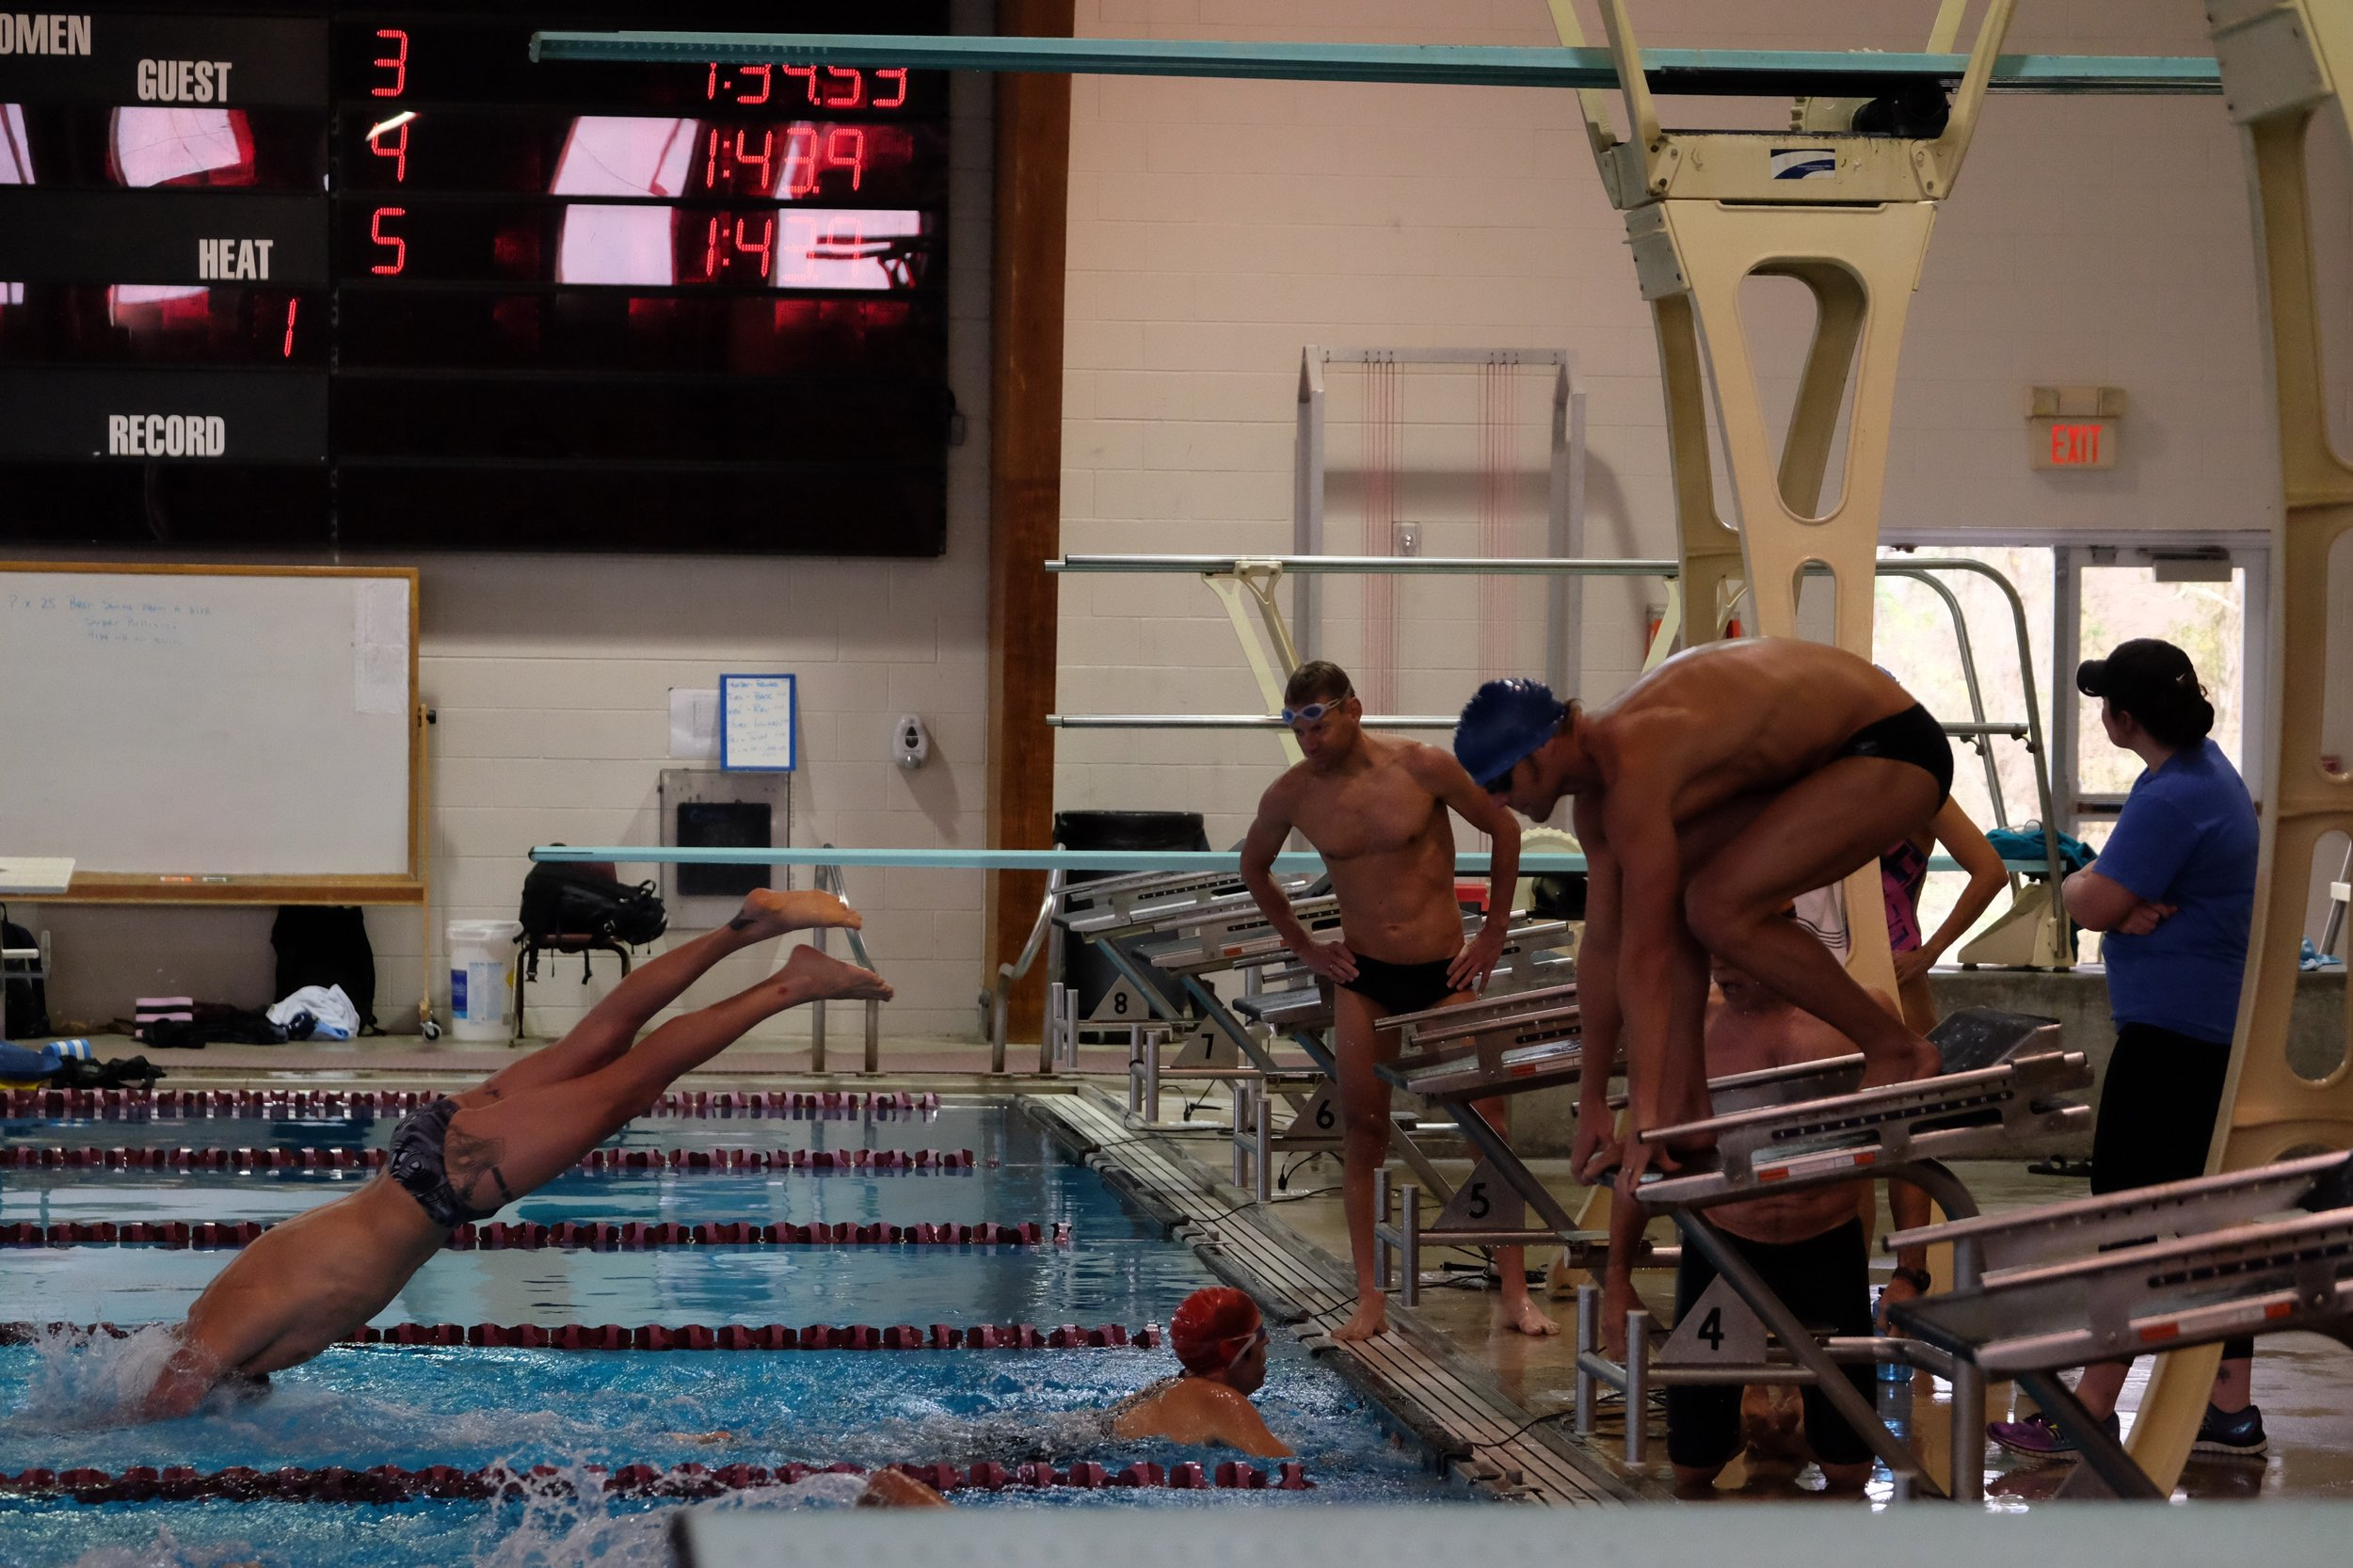 Running the anchor leg of the 200 yd relay.